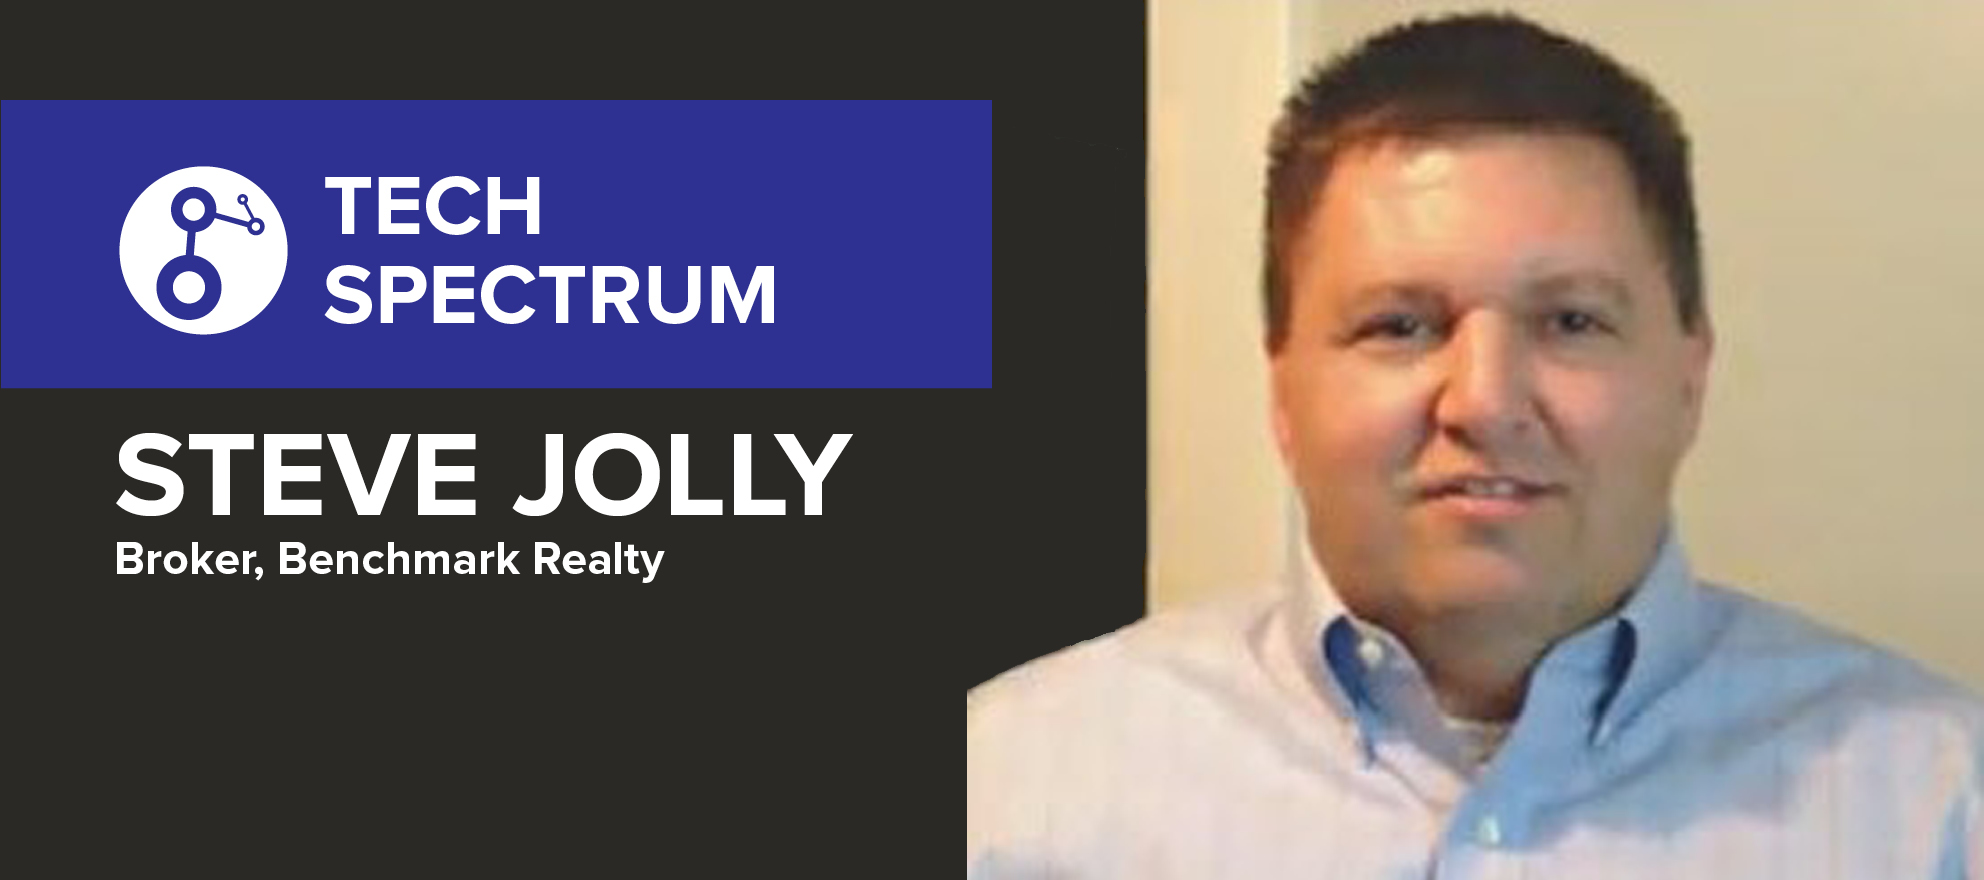 Steve Jolly: 'I could not work as effectively or efficiently without technology'